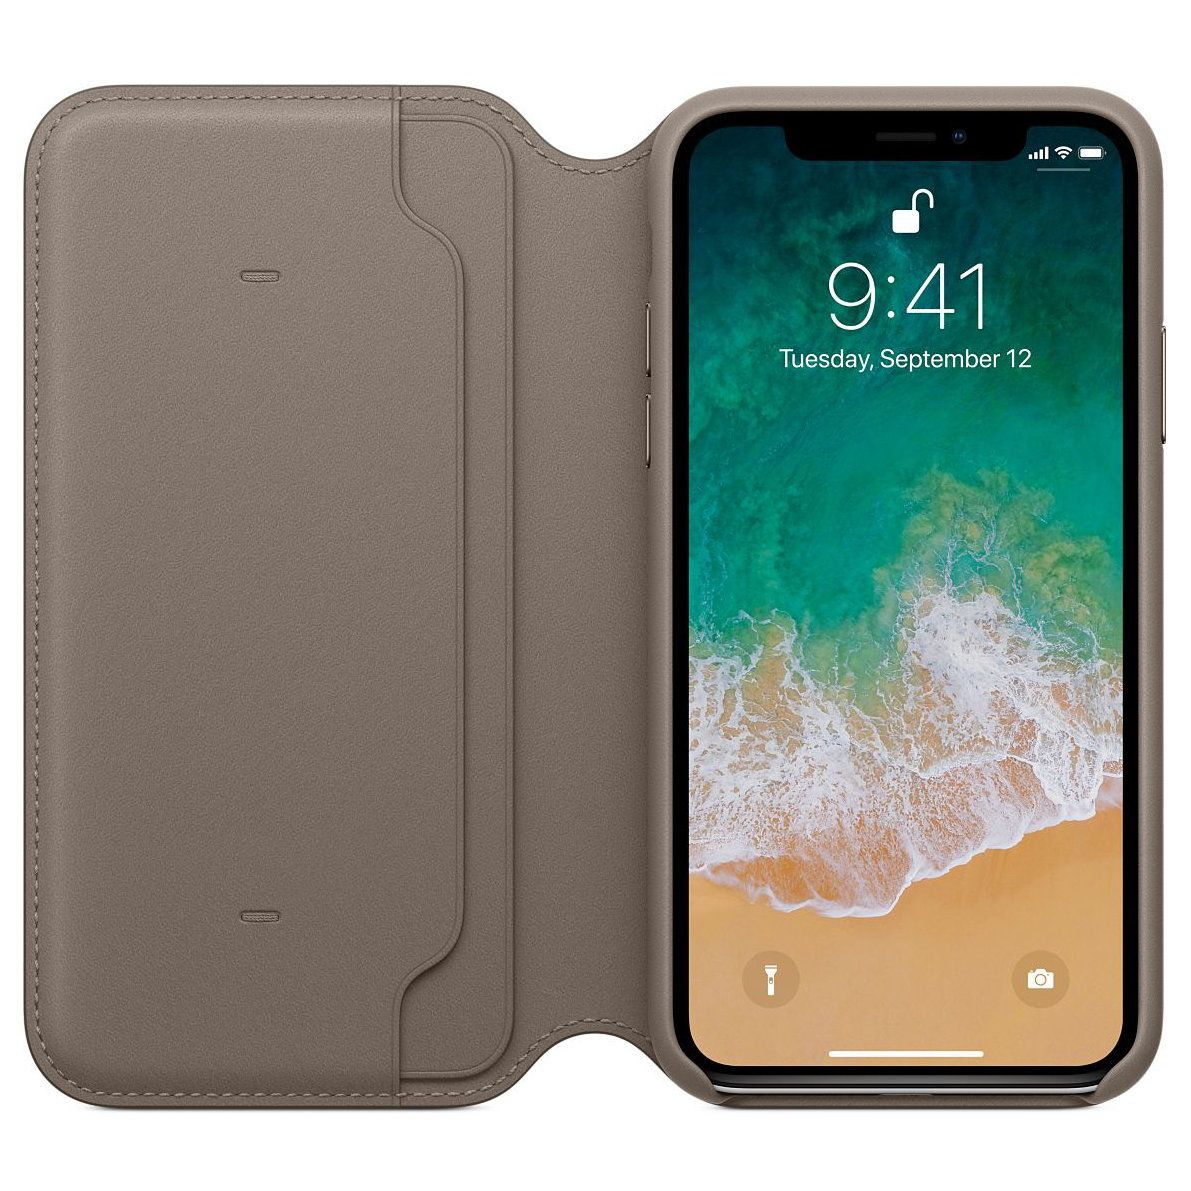 10 Best iPhone Wallet Cases for the iPhone X in 2018 - Wallet Cases ...